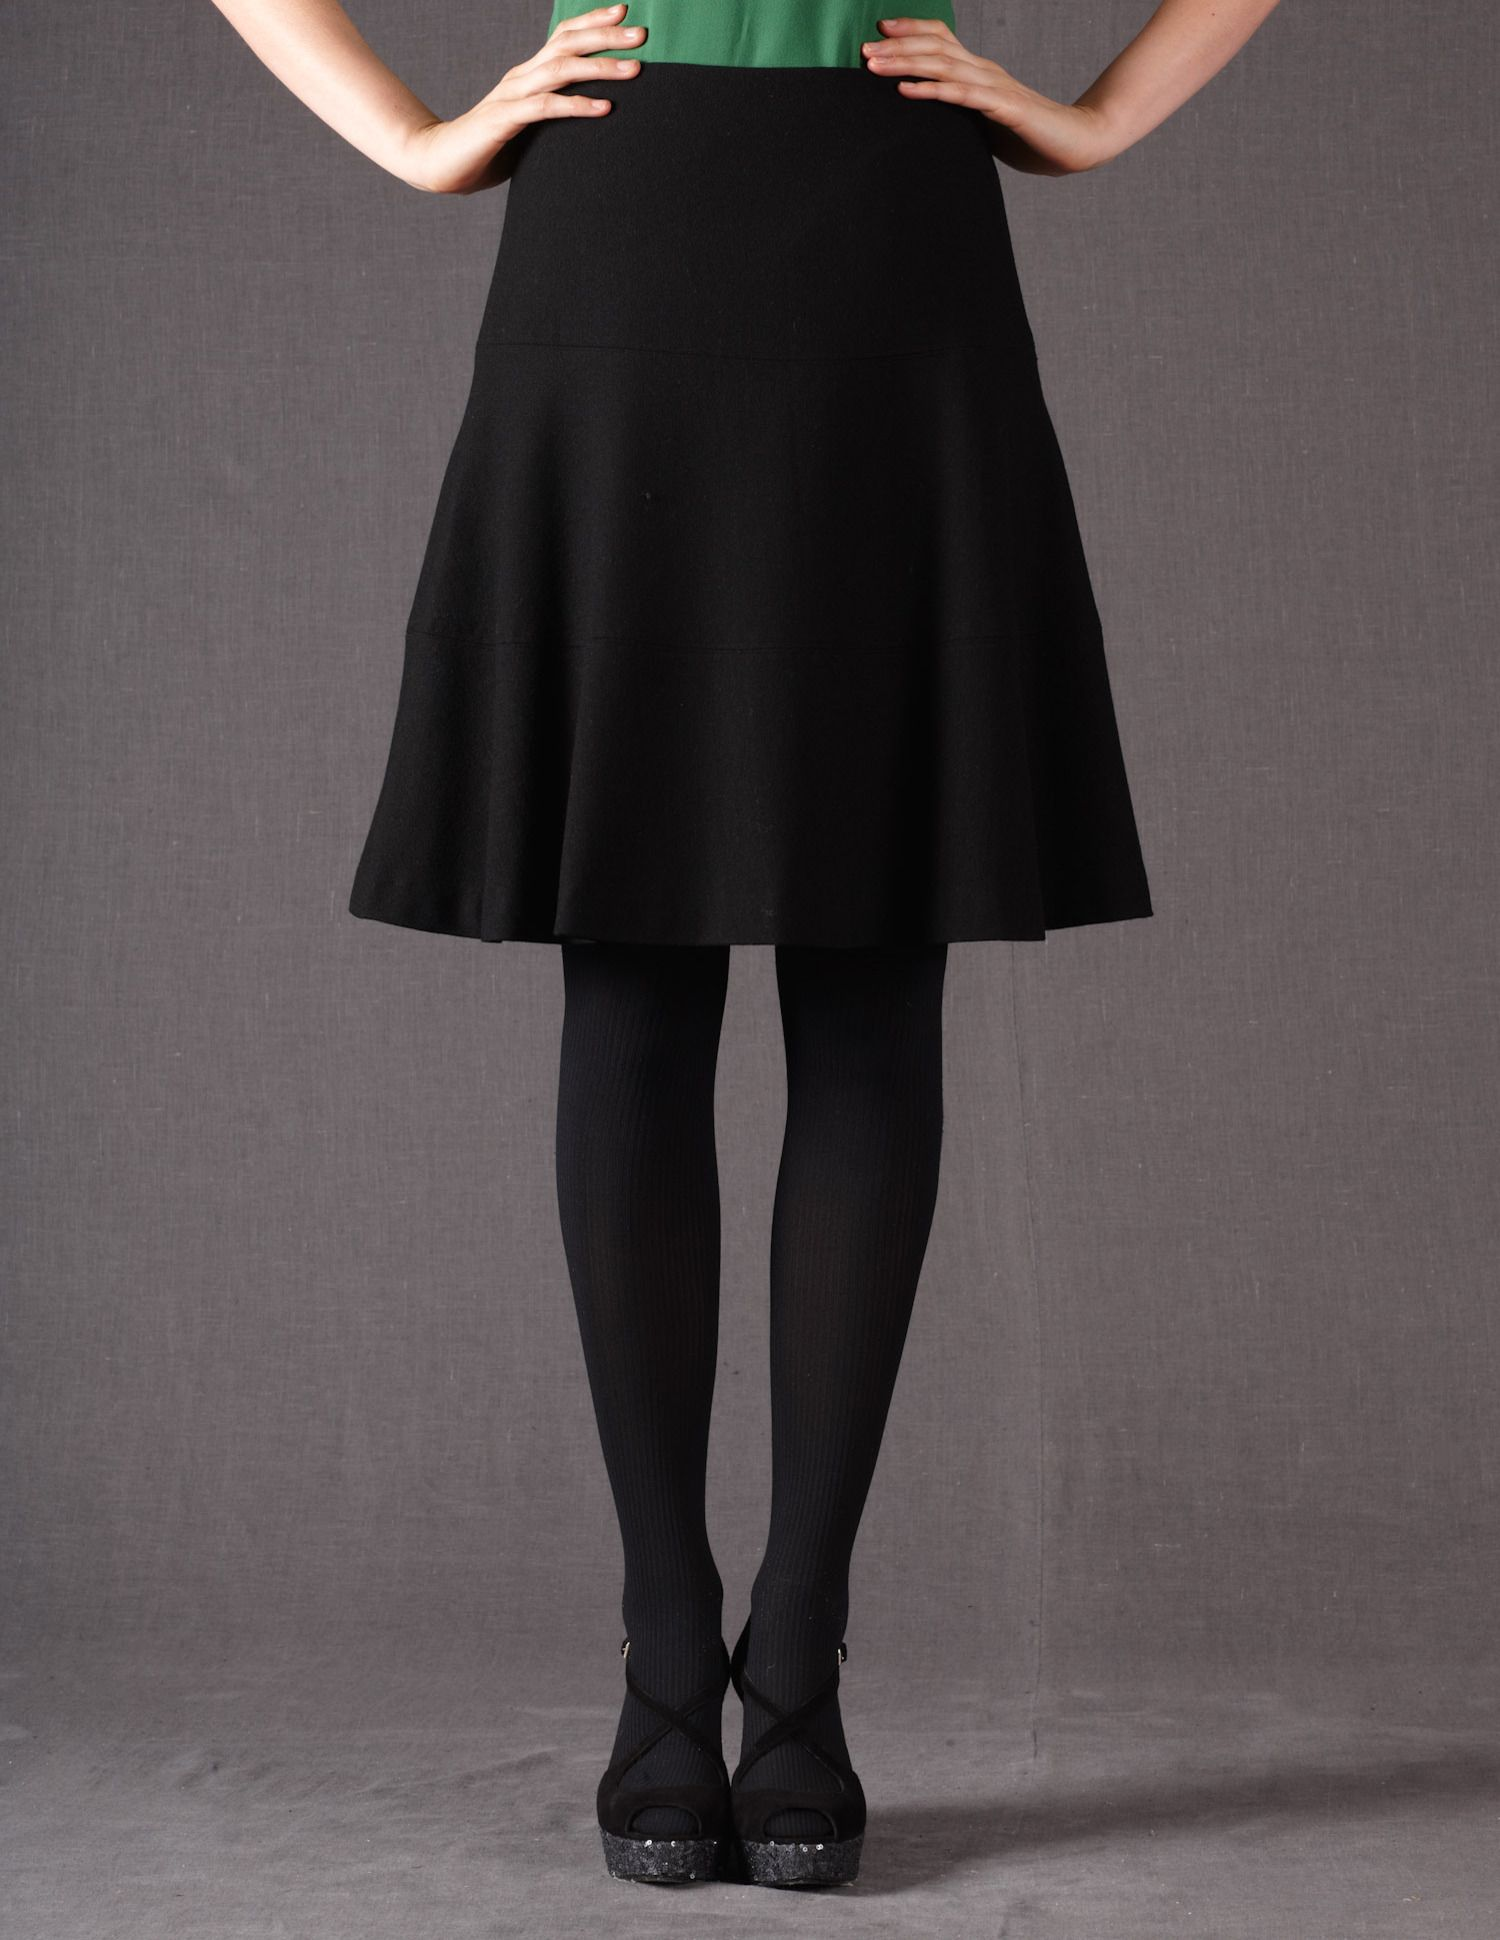 6af1af2e3288e The Styling Up stylists recommend: Boden: Wool Skater Skirt | My Style